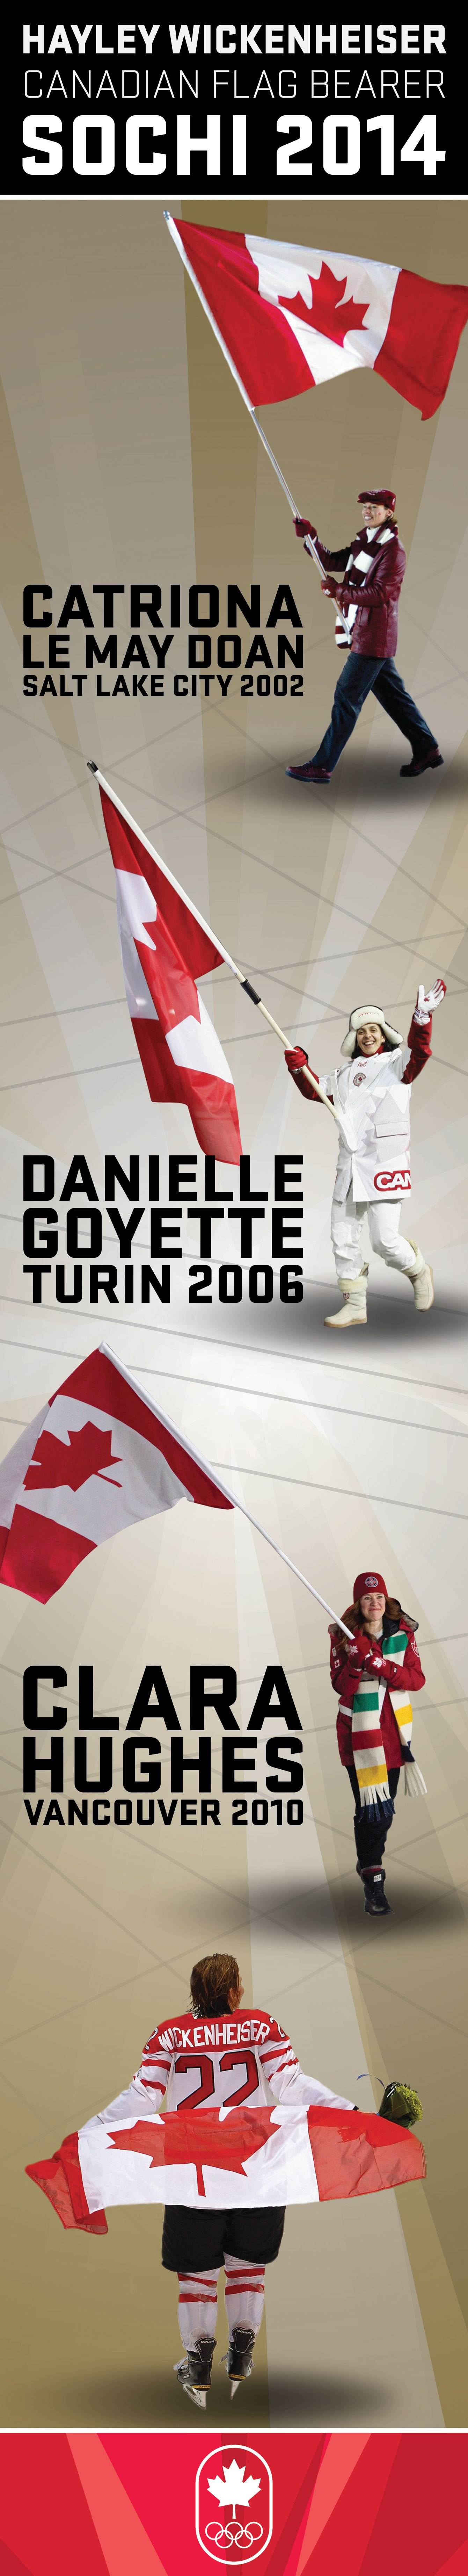 Canadian Winter Olympic Flag Bearers 2002 To Present Infographic Winter Olympics Canadian Winter Olympics